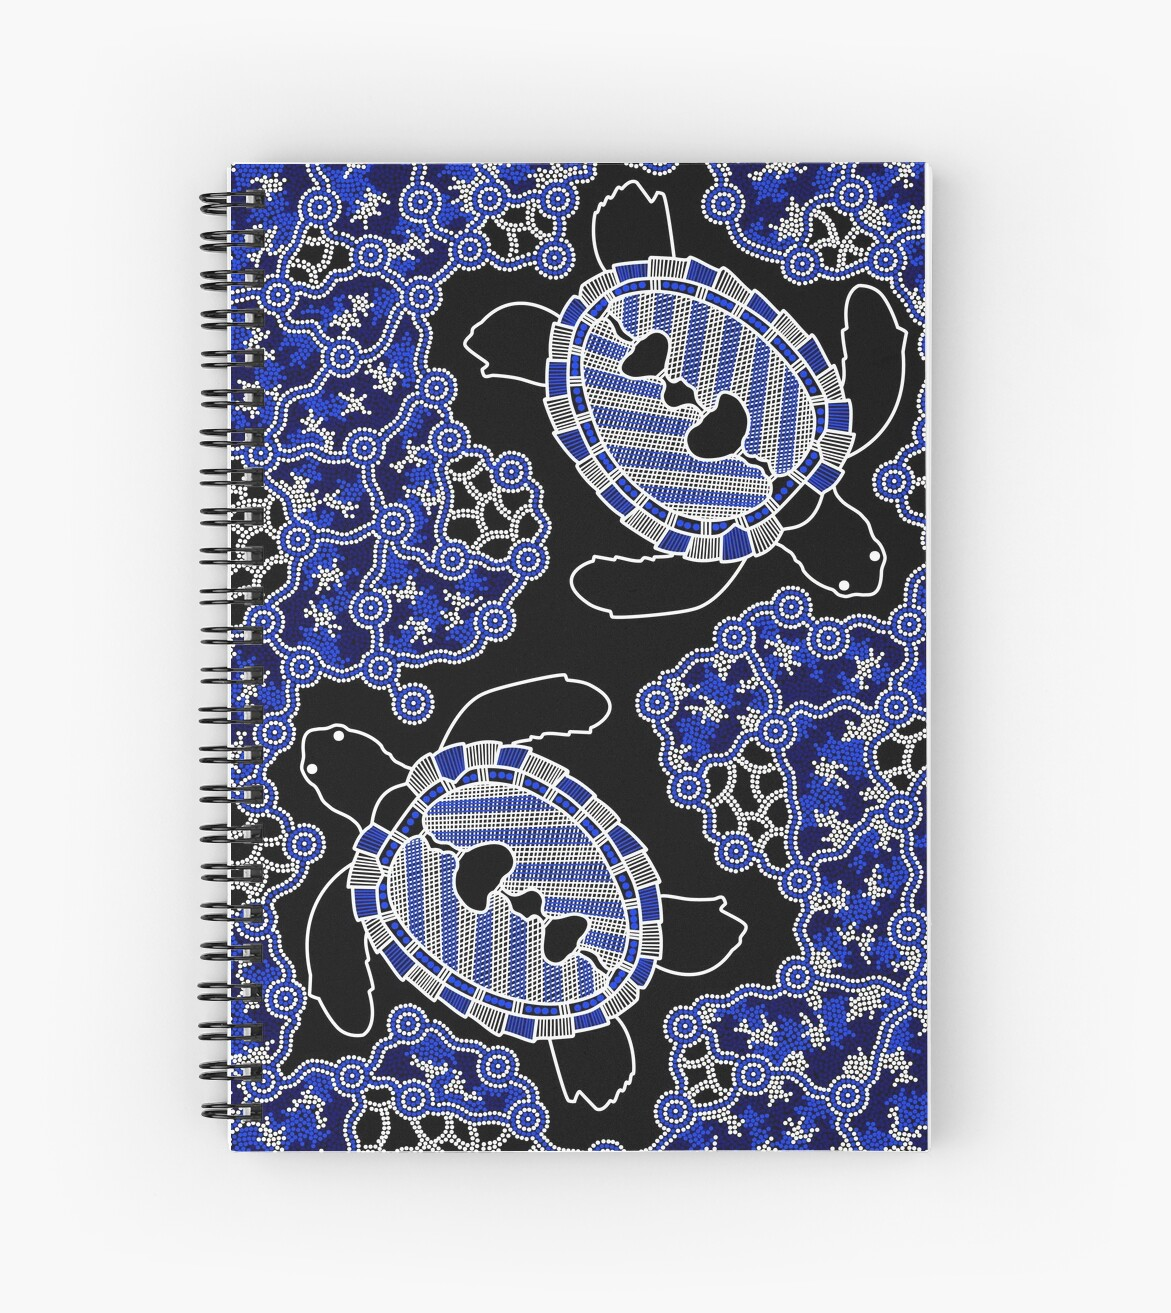 Aboriginal Art Turtles Sea Turtle Dreaming Spiral Notebooks By